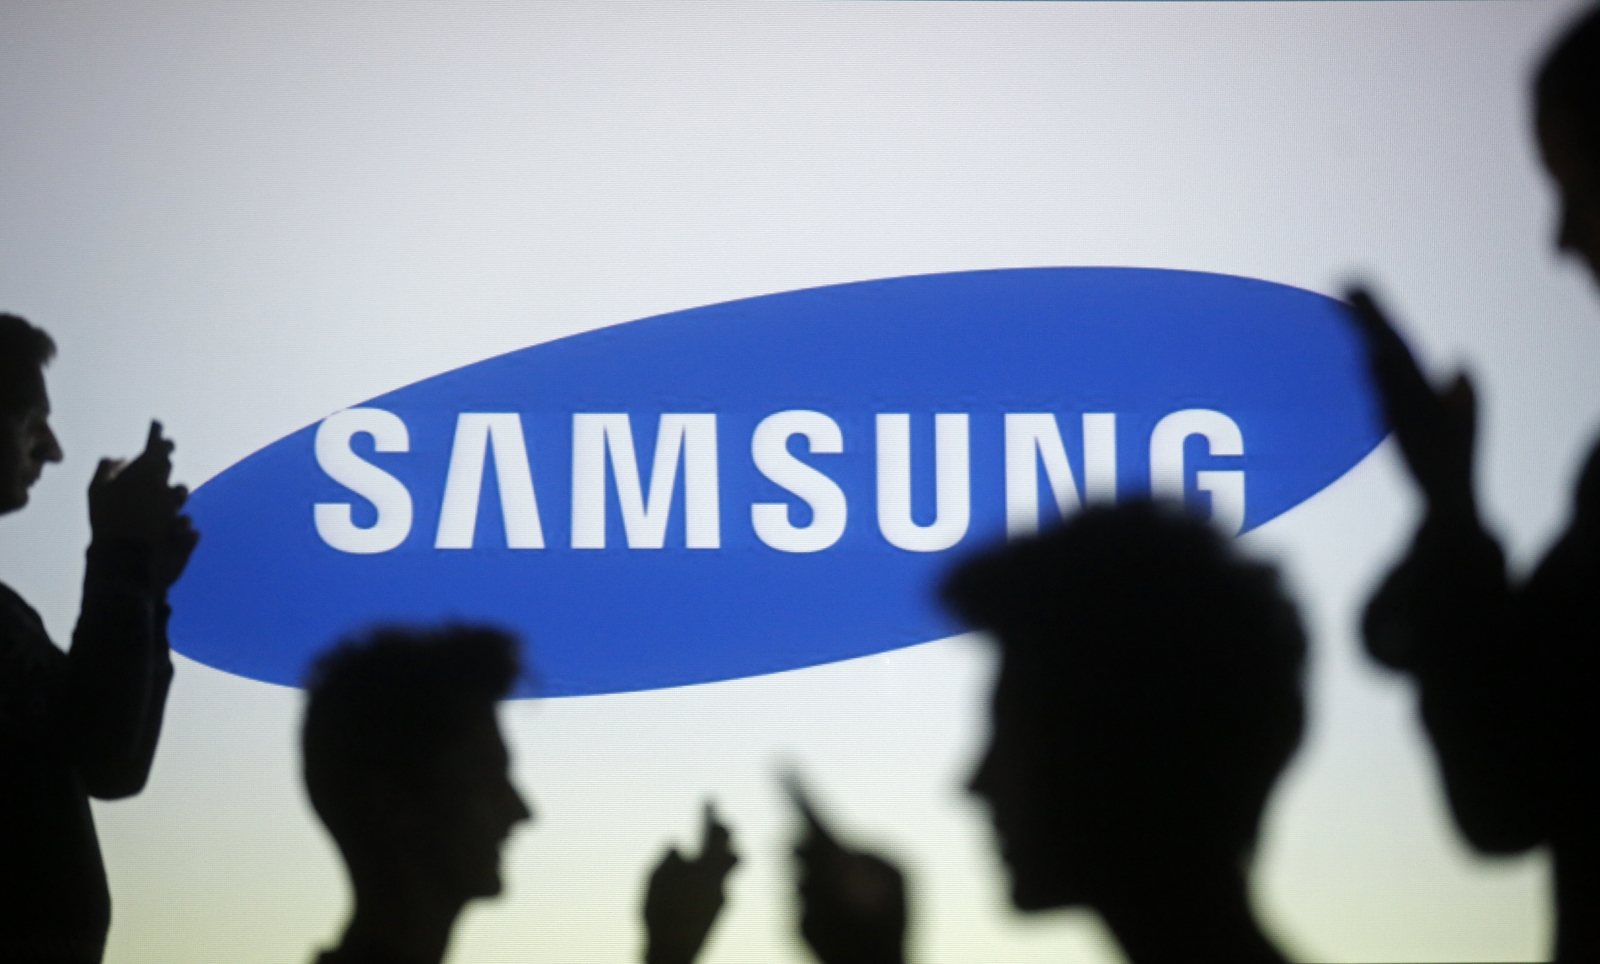 Samsung Z1 Tizen-based smartphone expected to be launched during early 2015